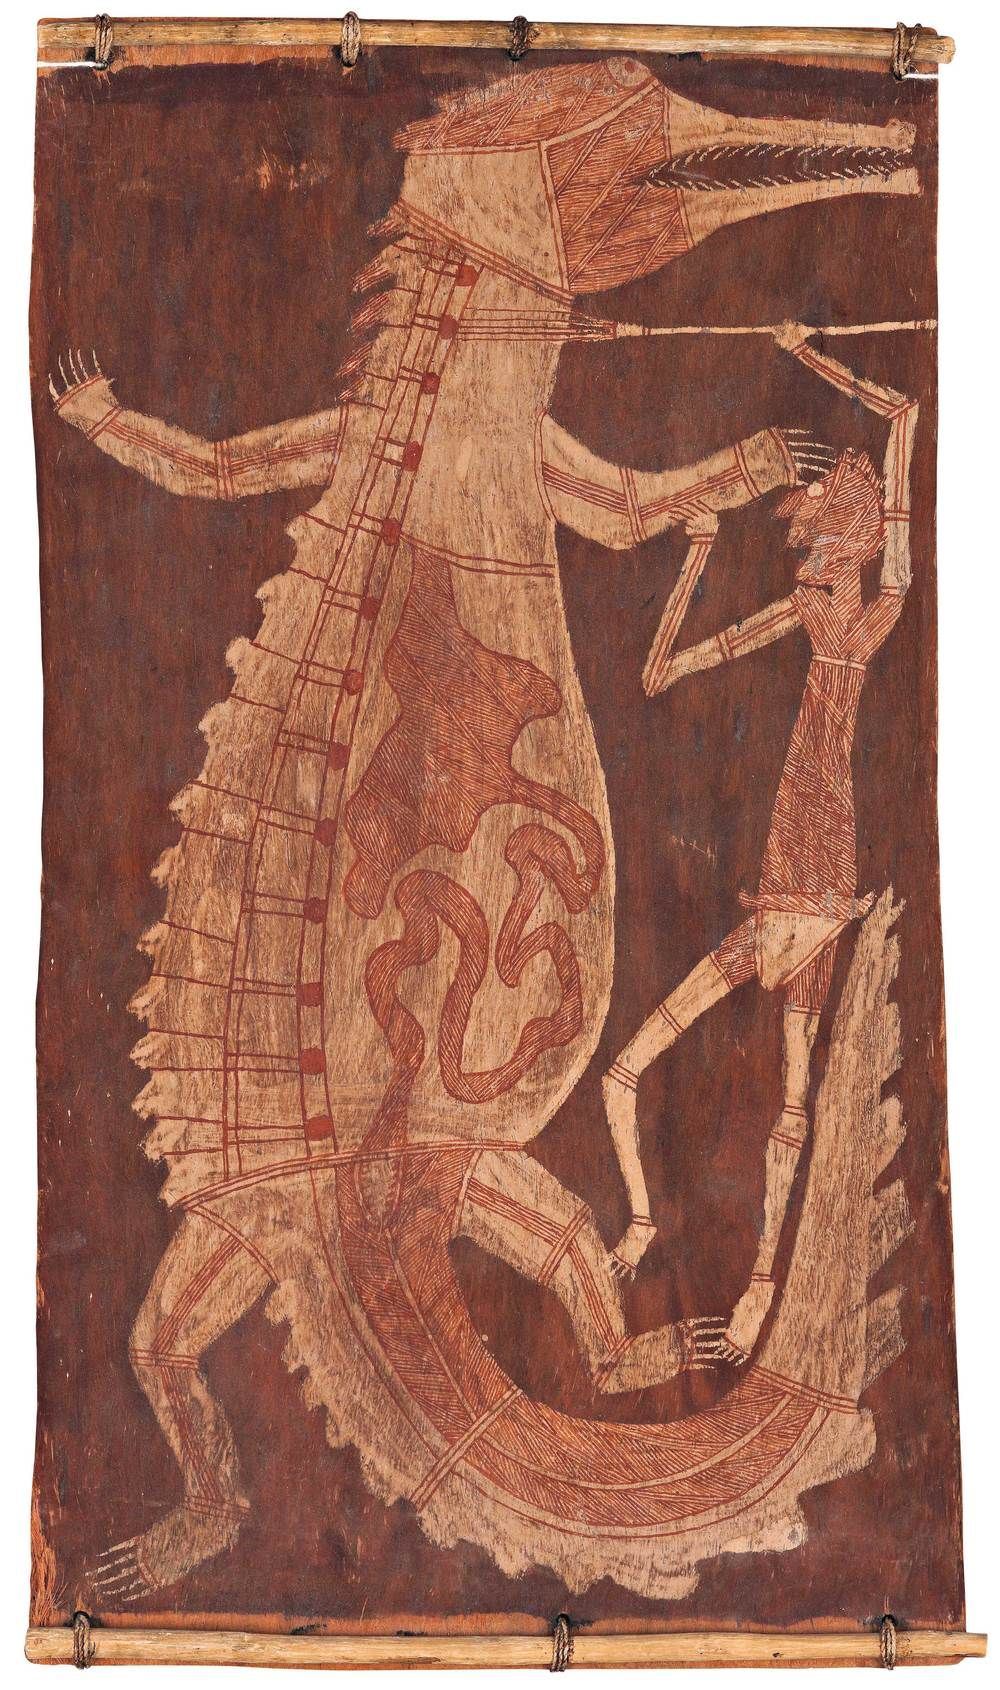 DICK NGULEINGULEI, 1920–1988 Mimi Killing Crocodile, 1965